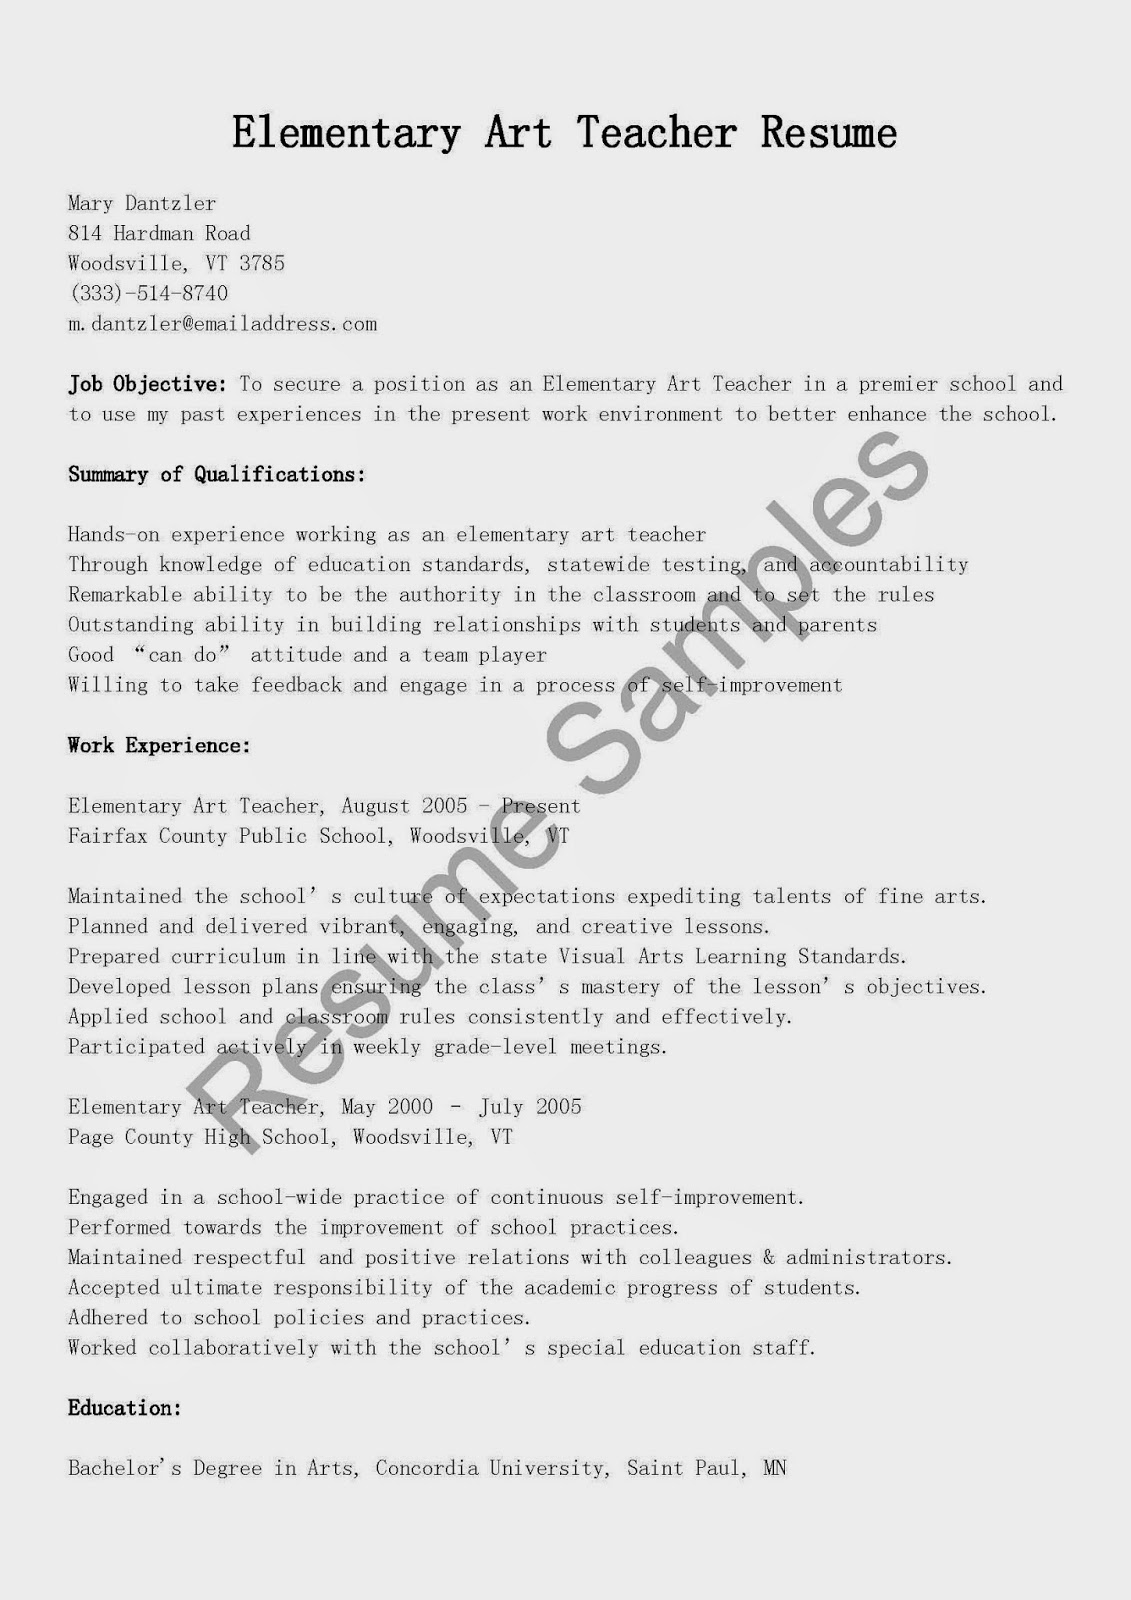 Resume Samples Elementary Art Teacher Resume Sample